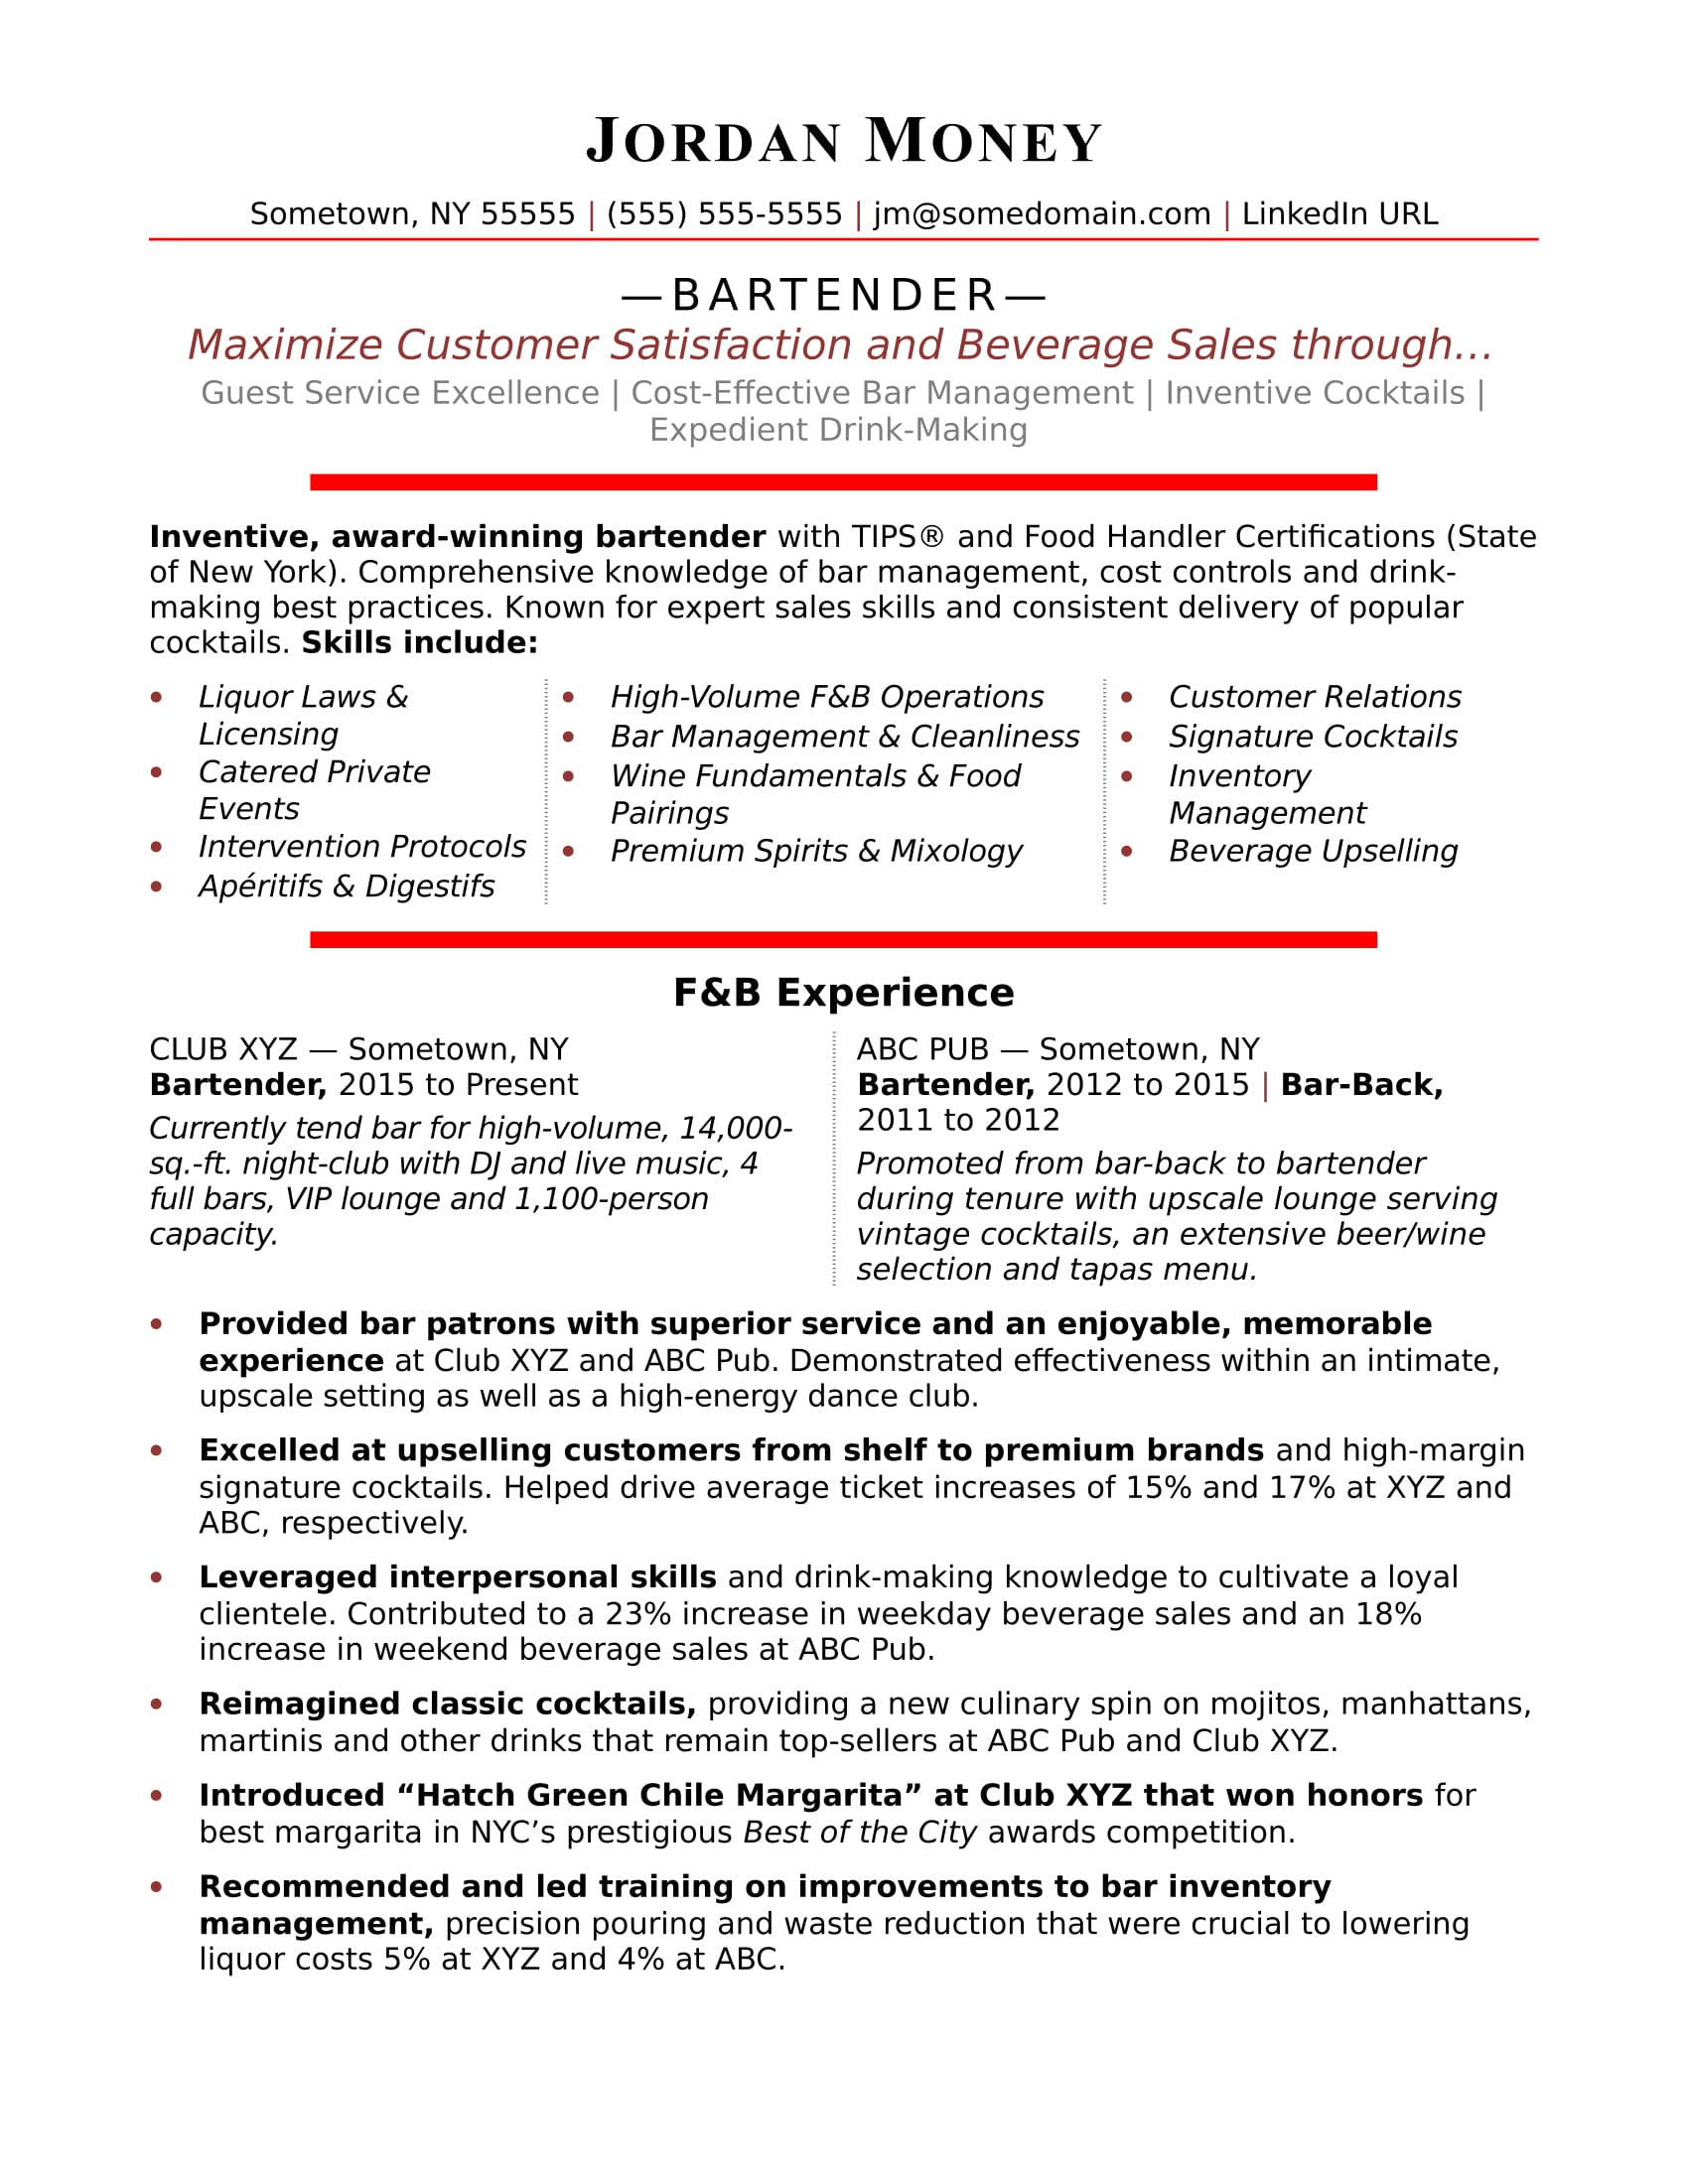 Bartender Resume Description - A Good Resume Example •